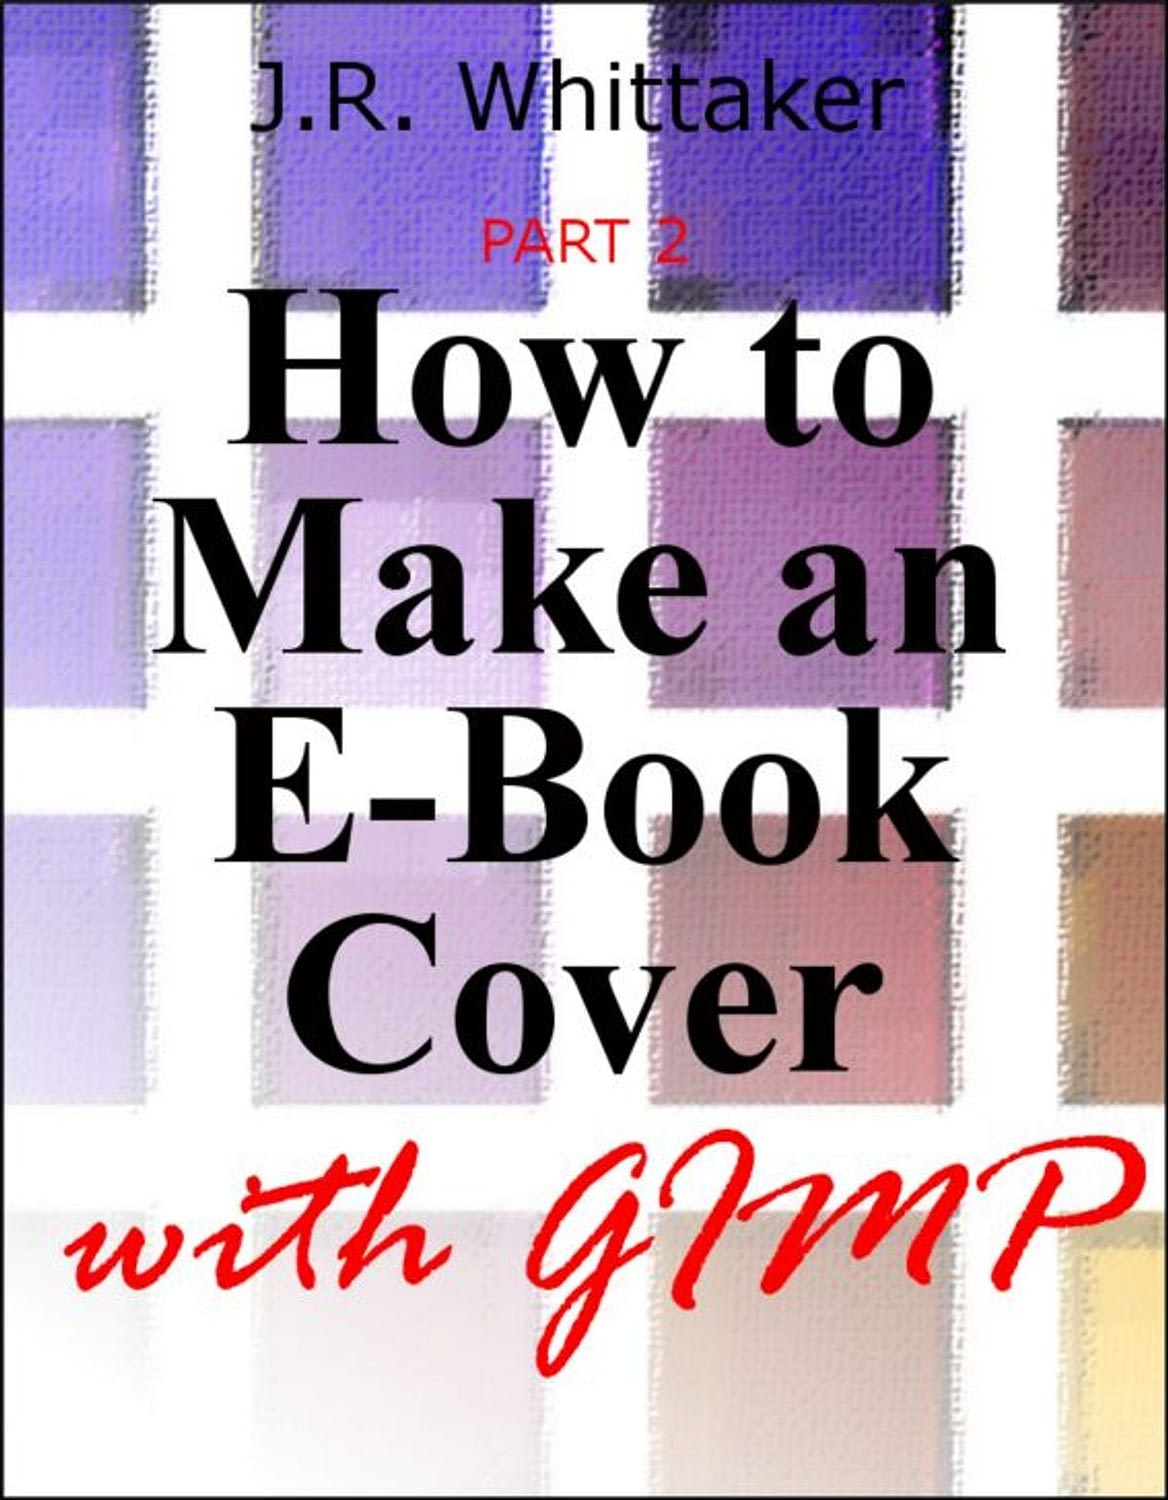 Free EBook Covers – How to Create Yours For Free With GIMP – Part 1 of 2